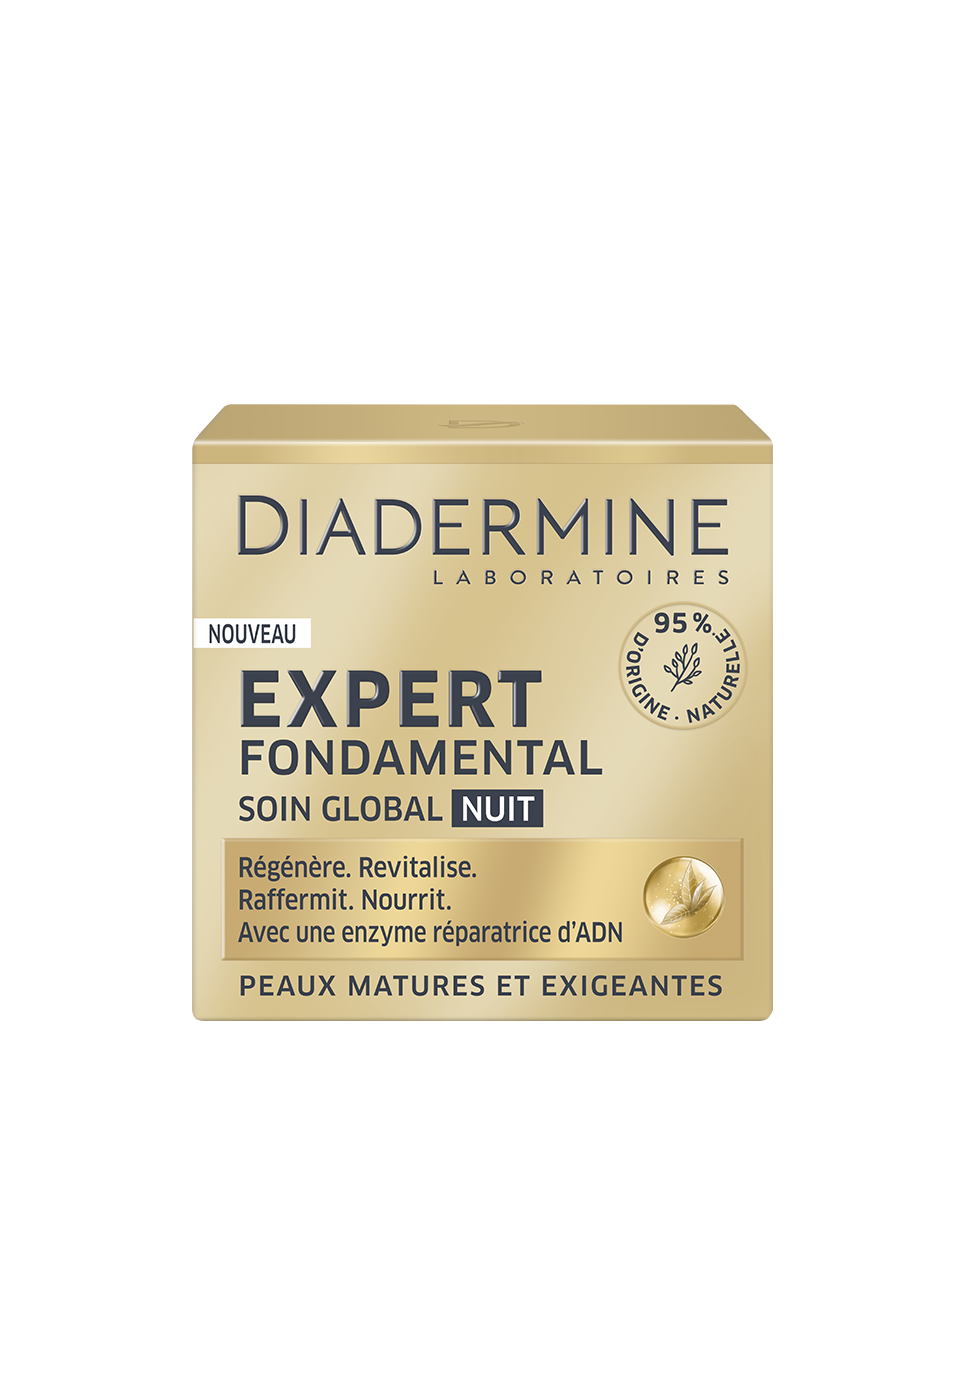 expert fondamental soin global nuit